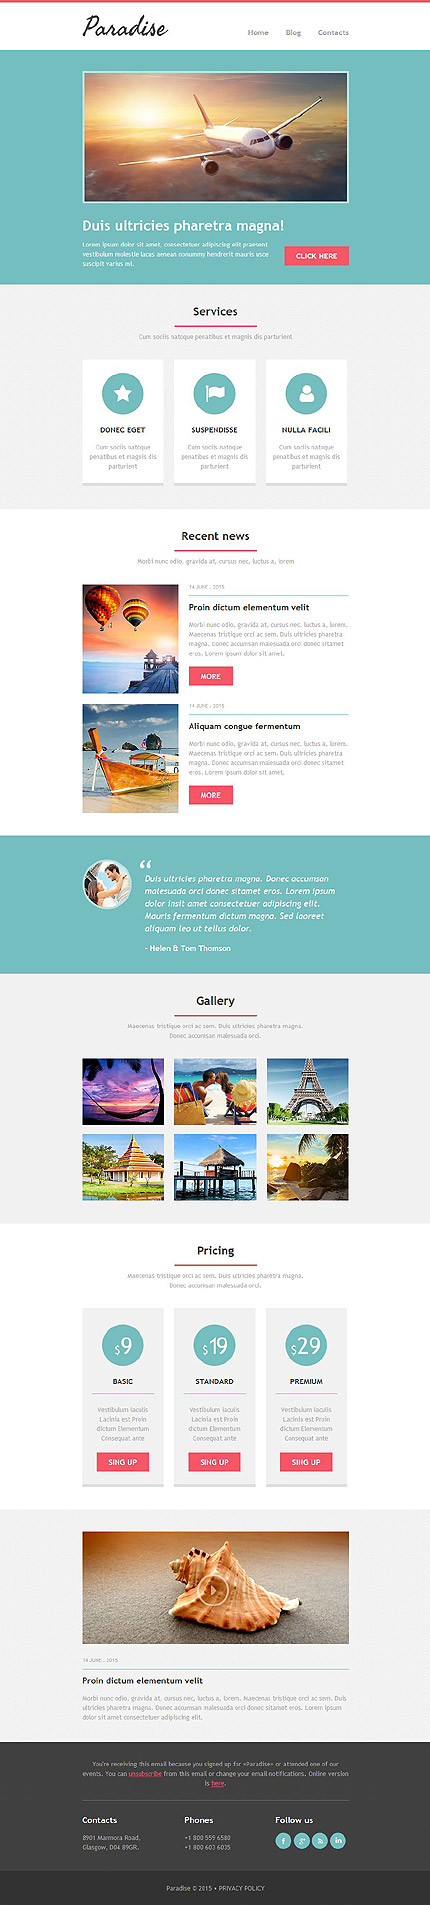 Template 52696 - Travel Responsive Newsletter Template - MailChimp Ready, Campaign Monitor Ready